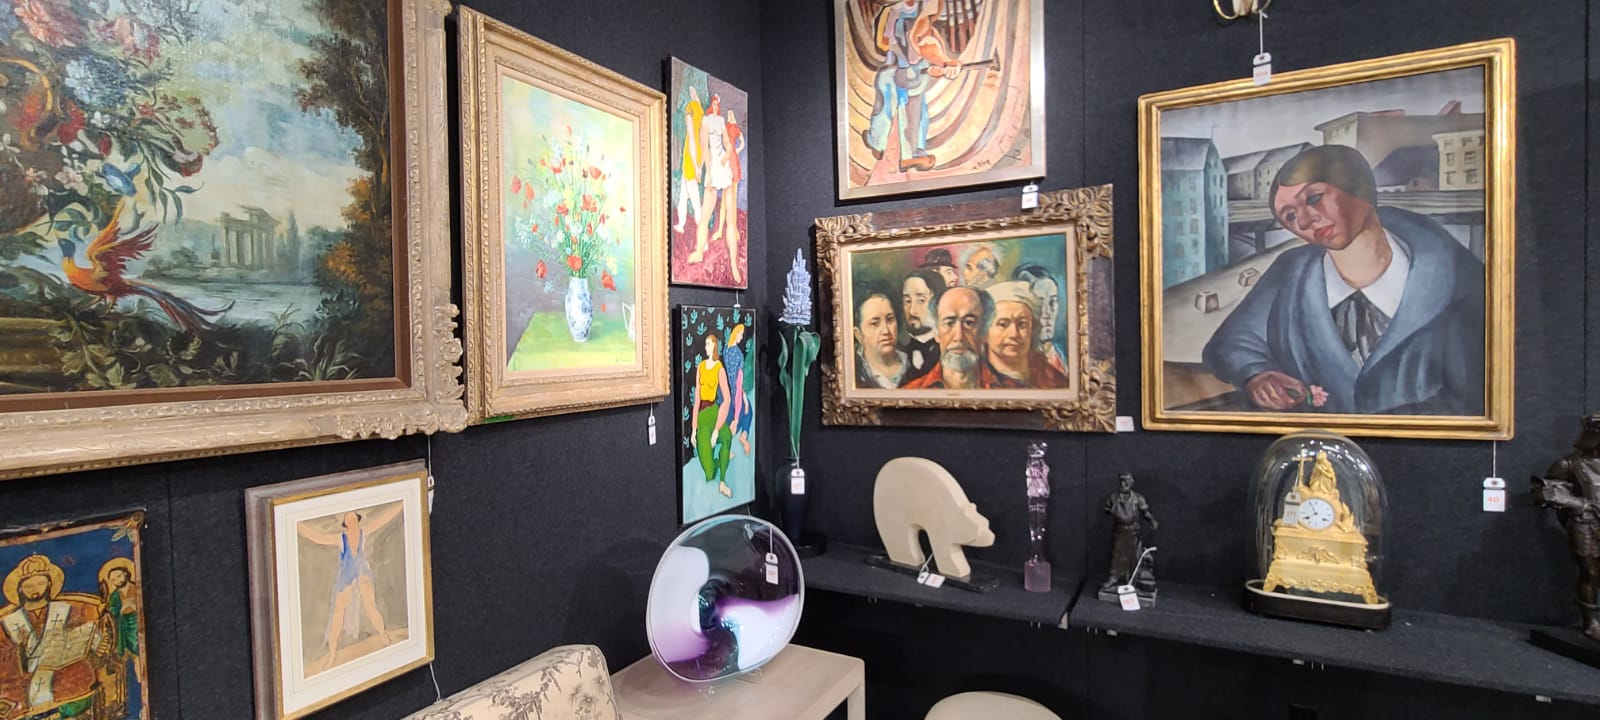 Showplace Luxury Art Design Vintage: A Paradise for Art Collectors